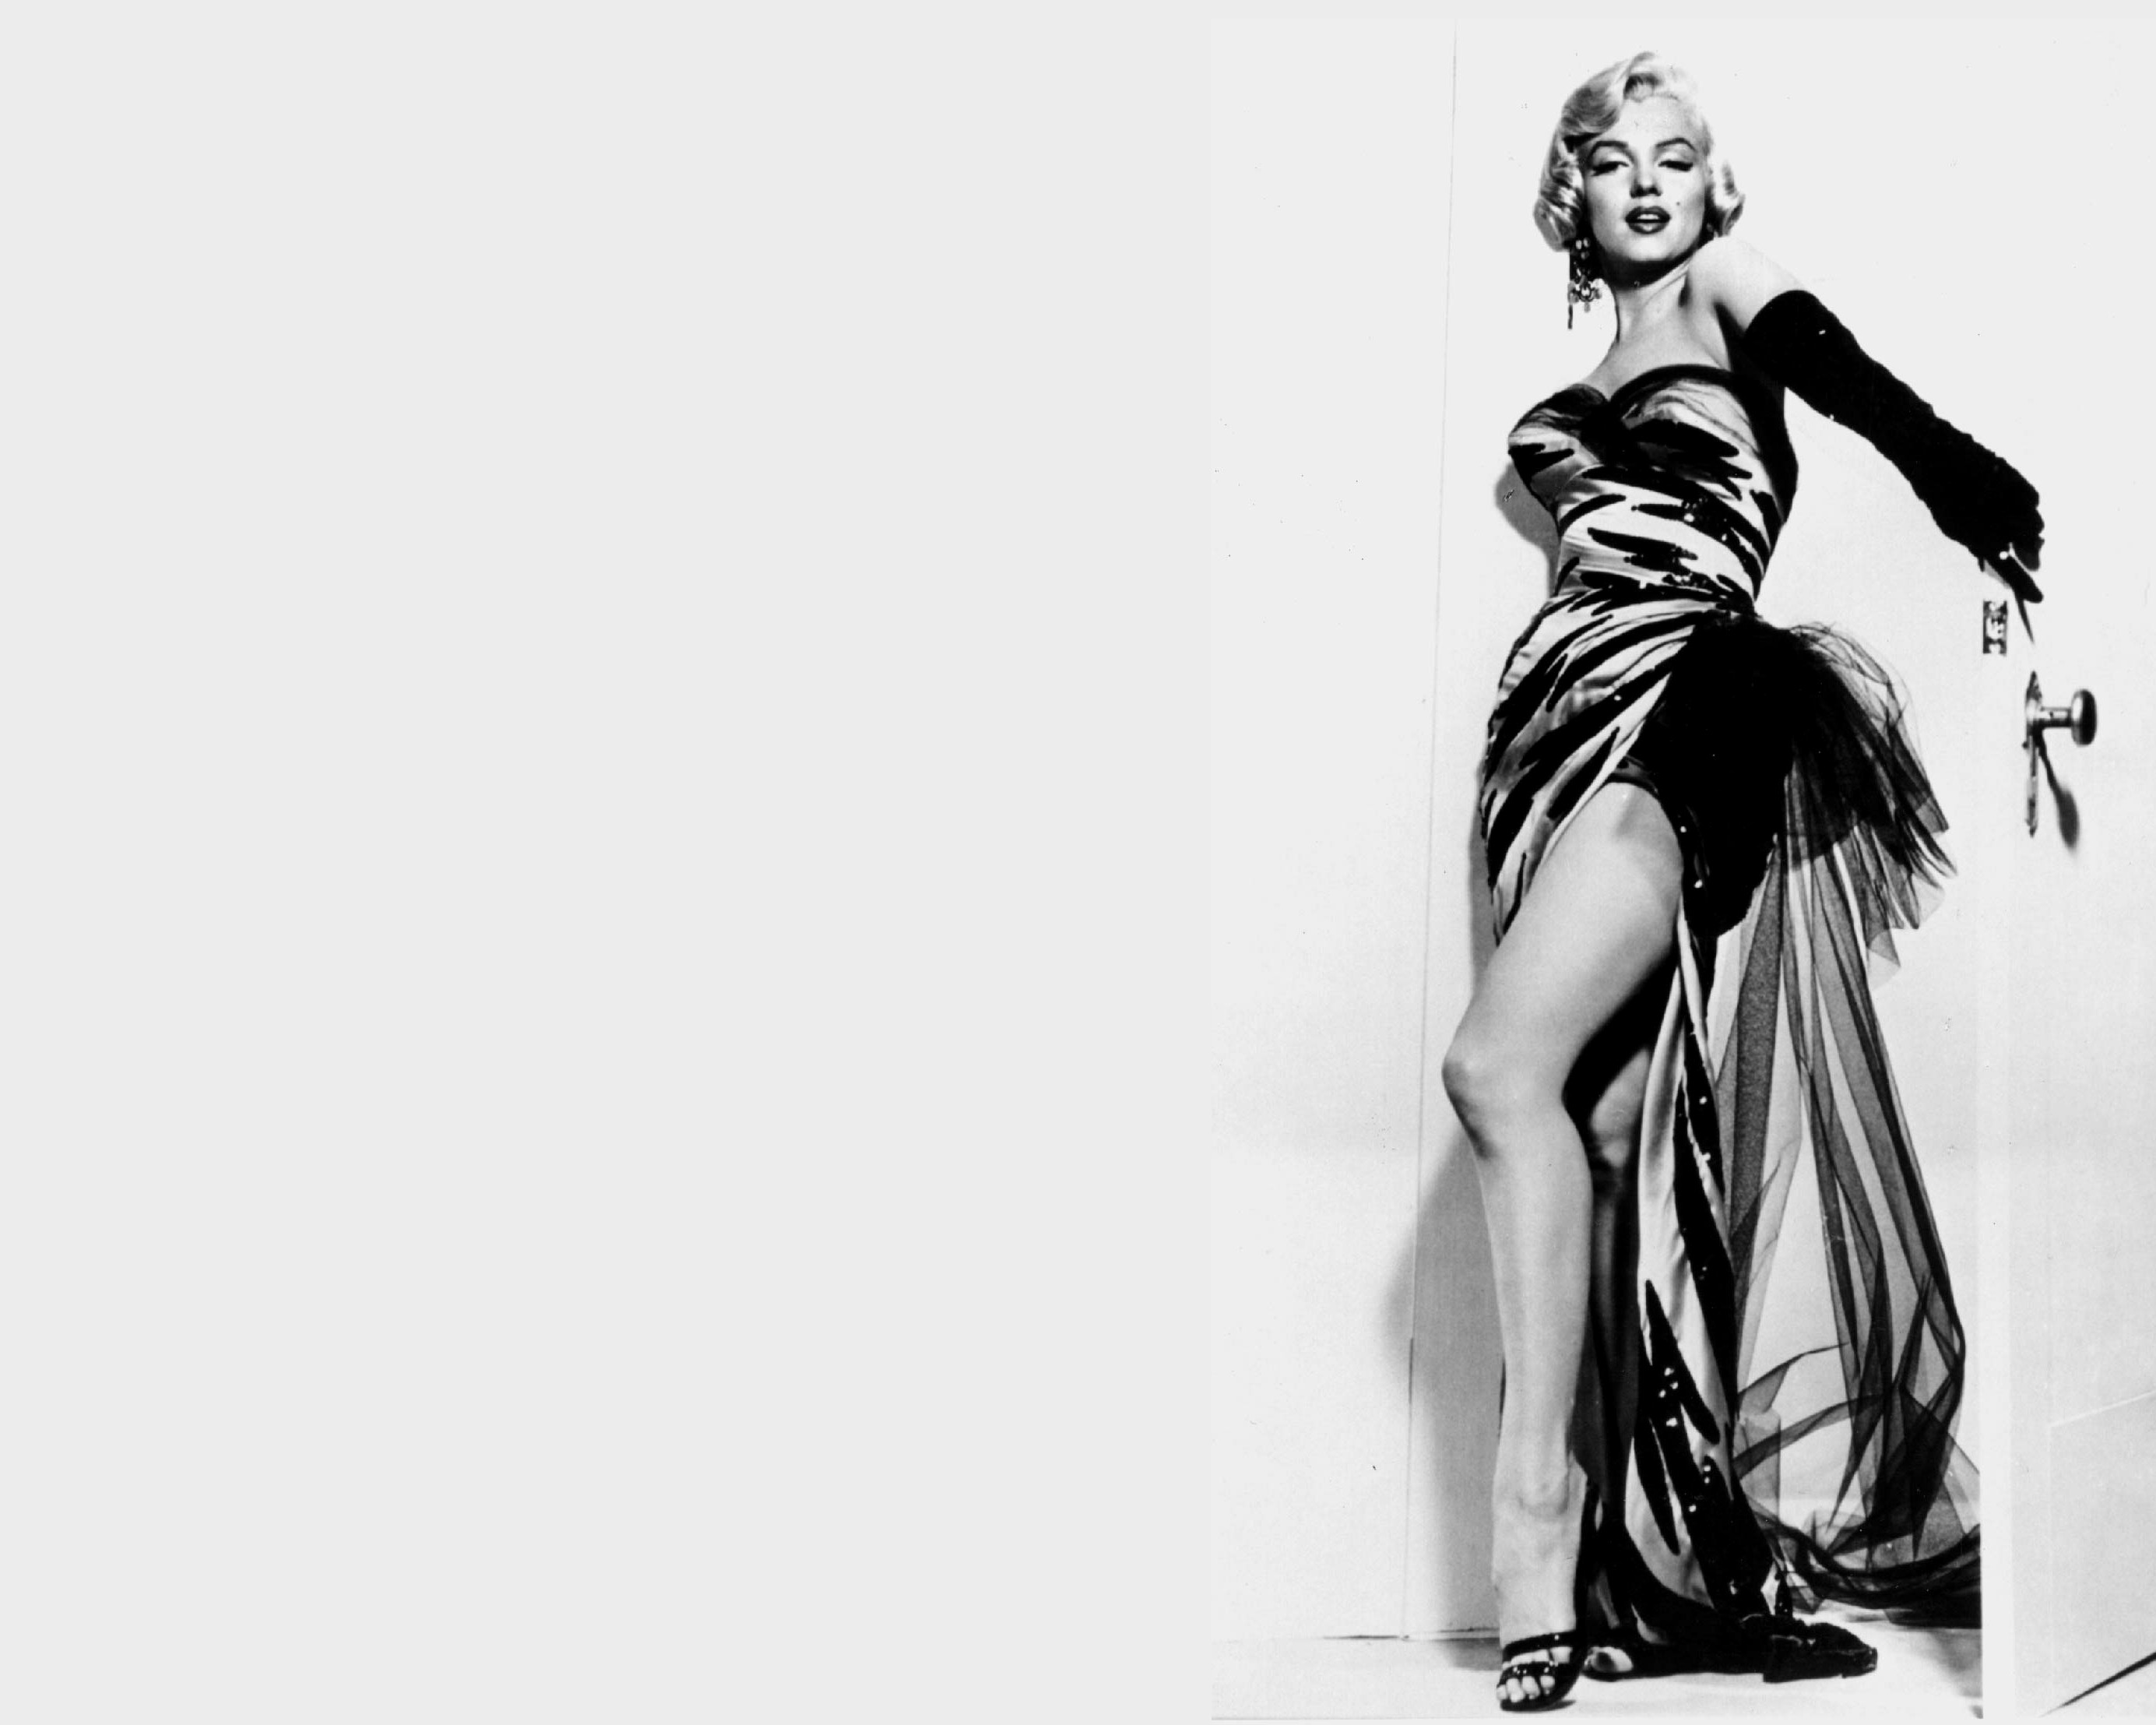 106 marilyn monroe hd wallpapers | background images - wallpaper abyss